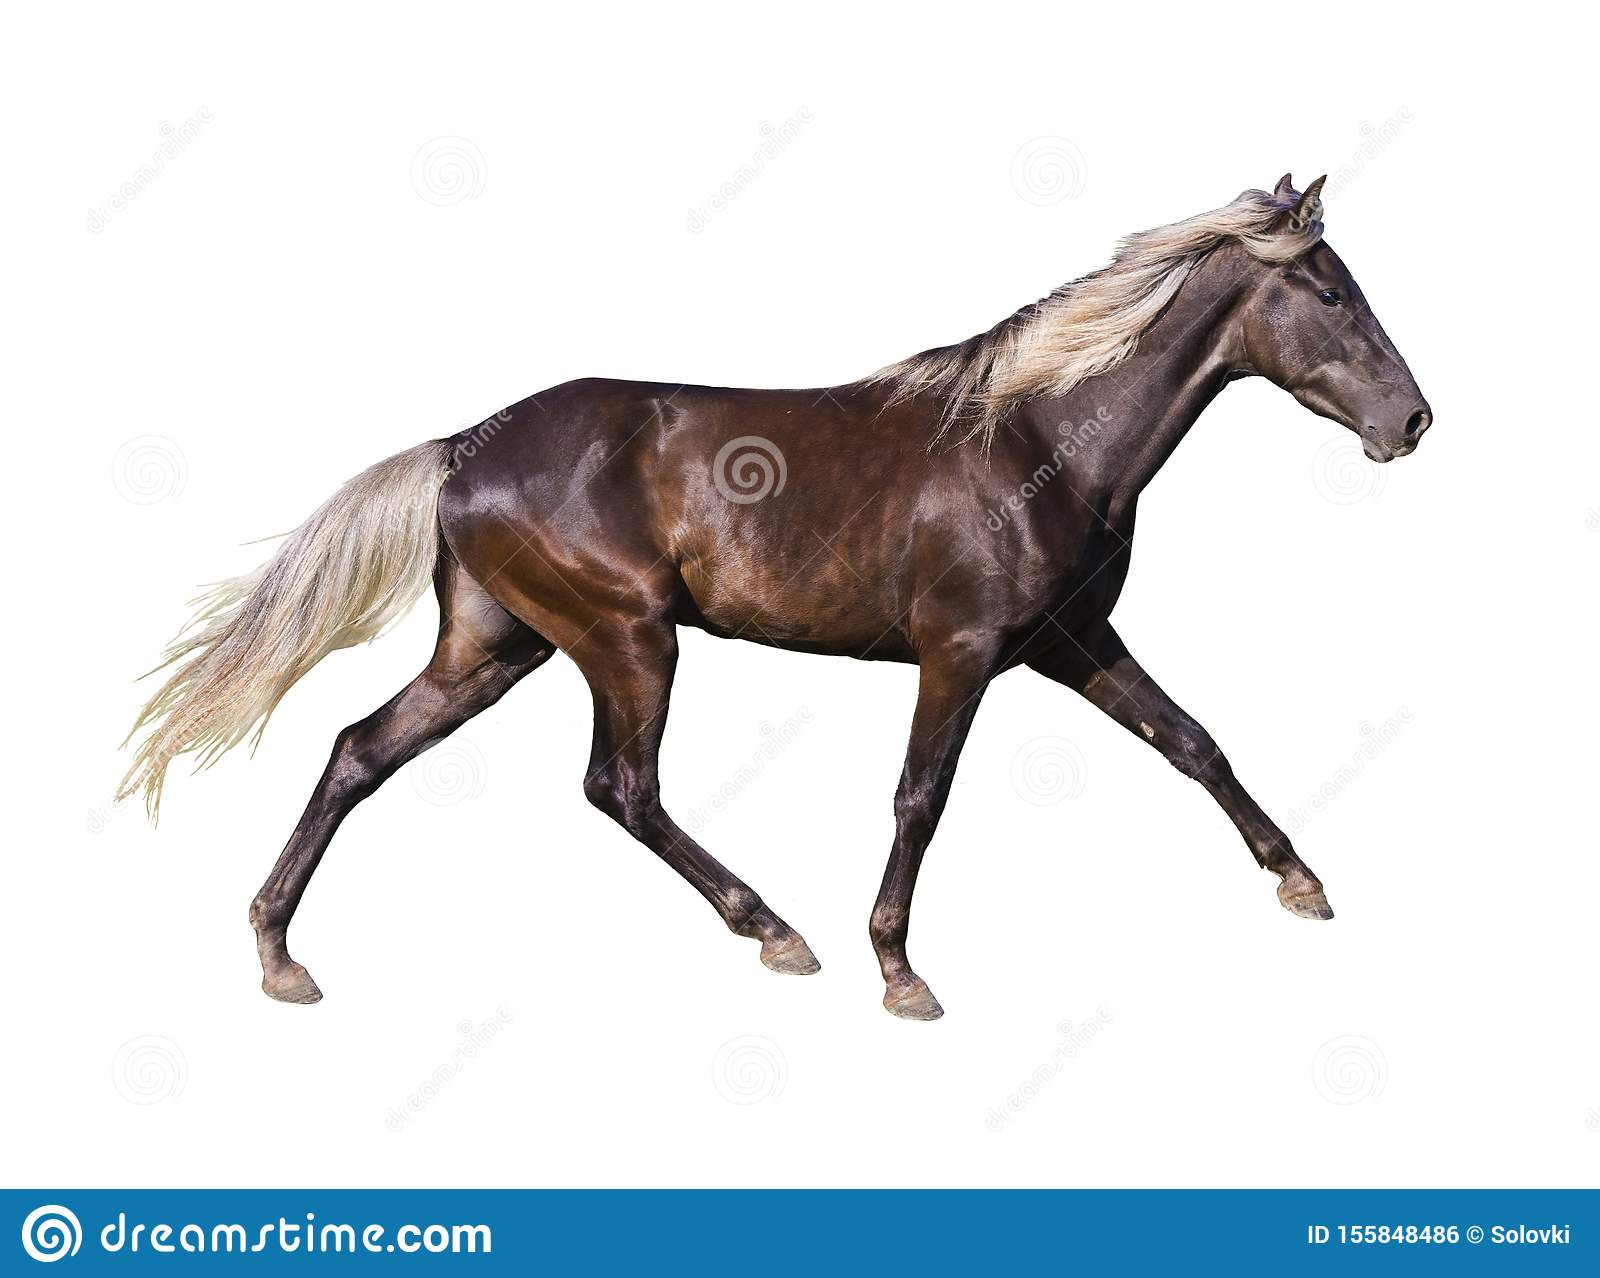 Silver Black Horse Breed Rocky Mountain Stock Photo Image Of Rocky Brown 155848486